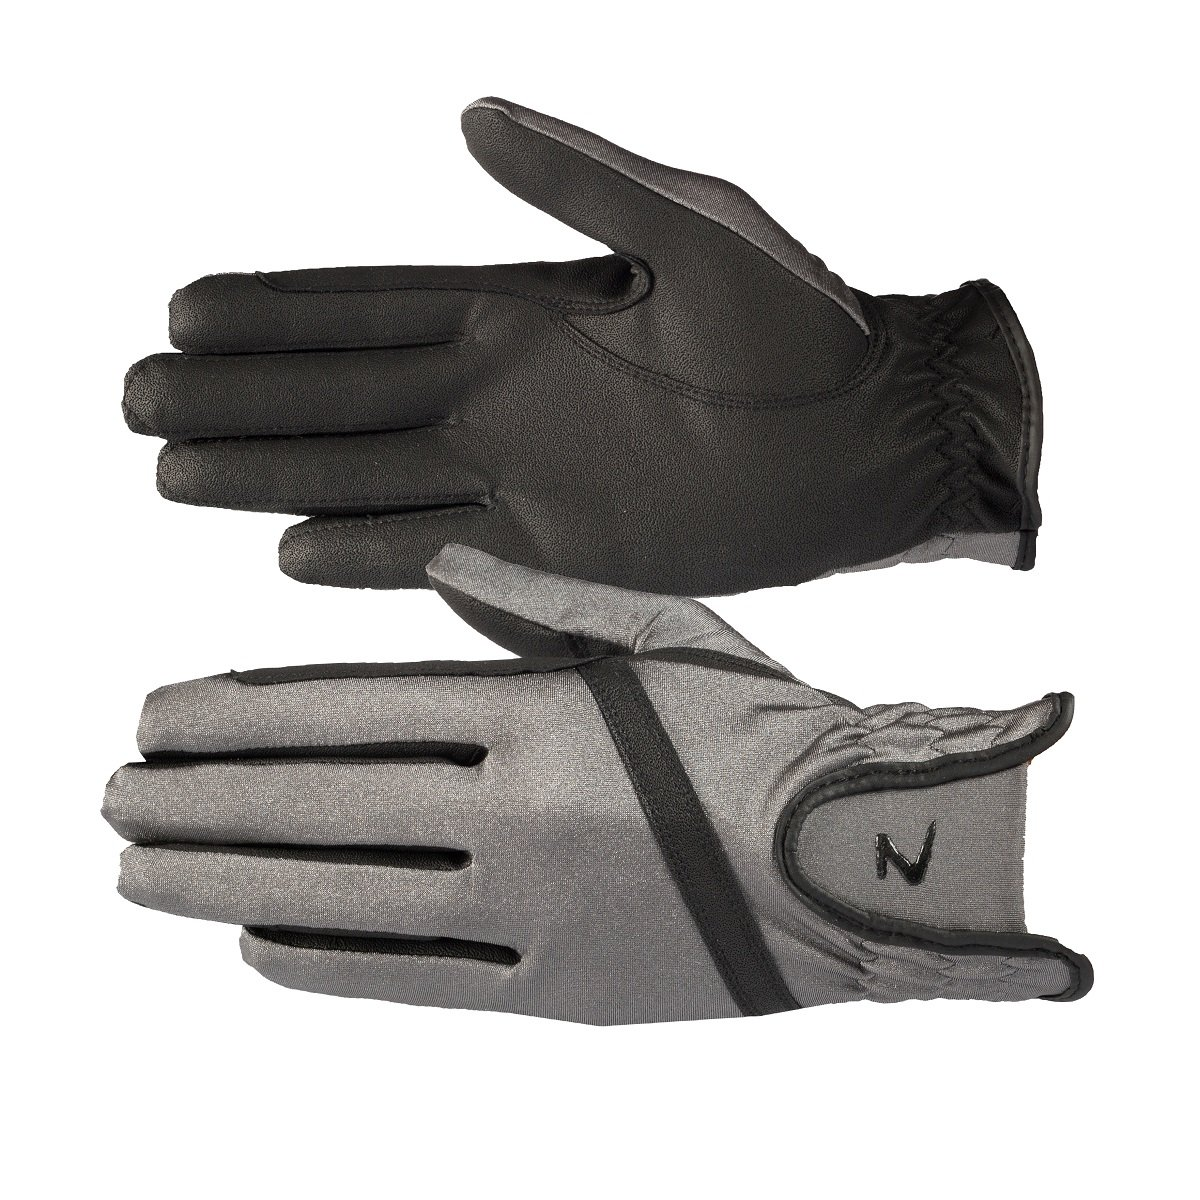 Horze Women's Ladies Evelyn STEEL GREY Stretchy Breathable Summer Riding Gloves (Size 9)